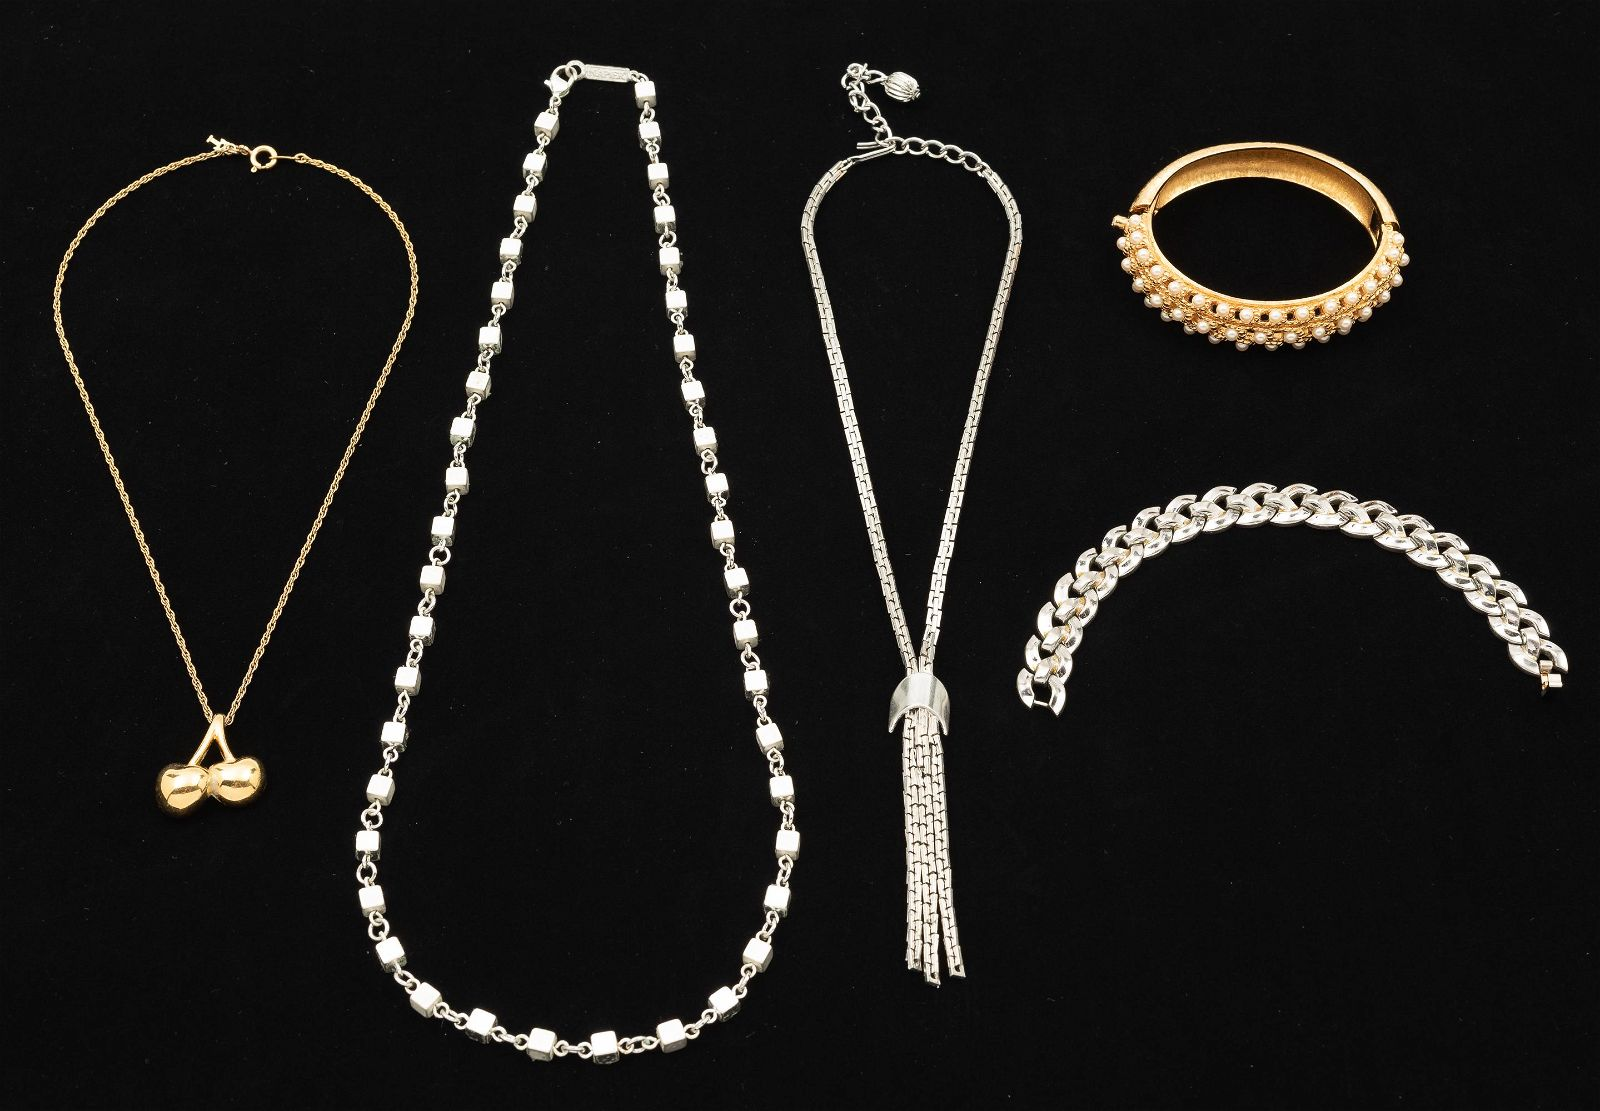 5 Pcs Costume Jewelry incl Signed